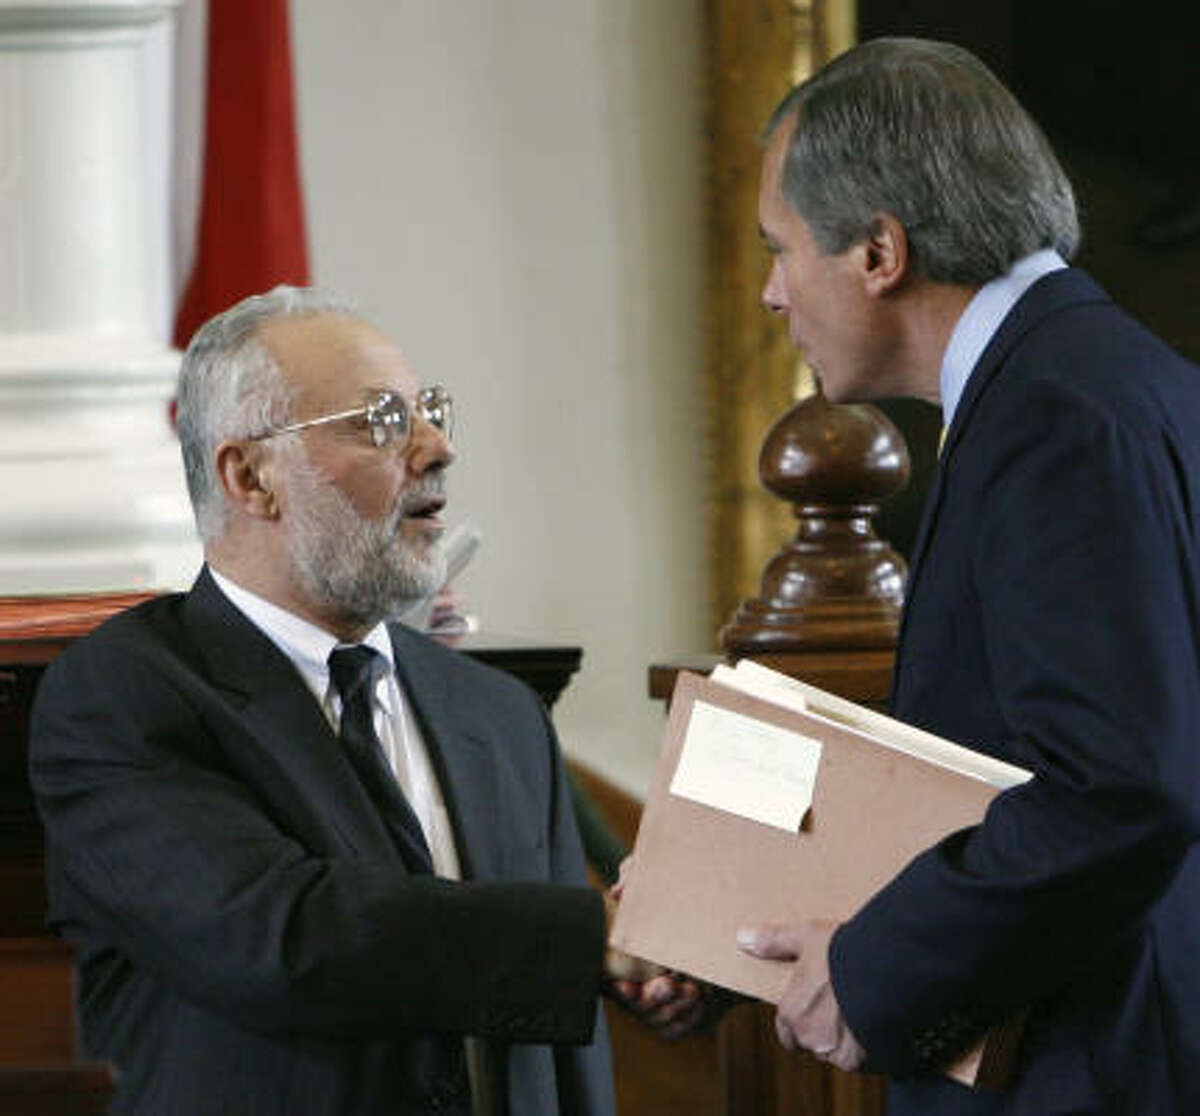 Imam Dr. Yusuf Kavakci, left, is welcomed to the Texas Senate by Lt. Gov. David Dewhurst, right, in Austin, Texas.